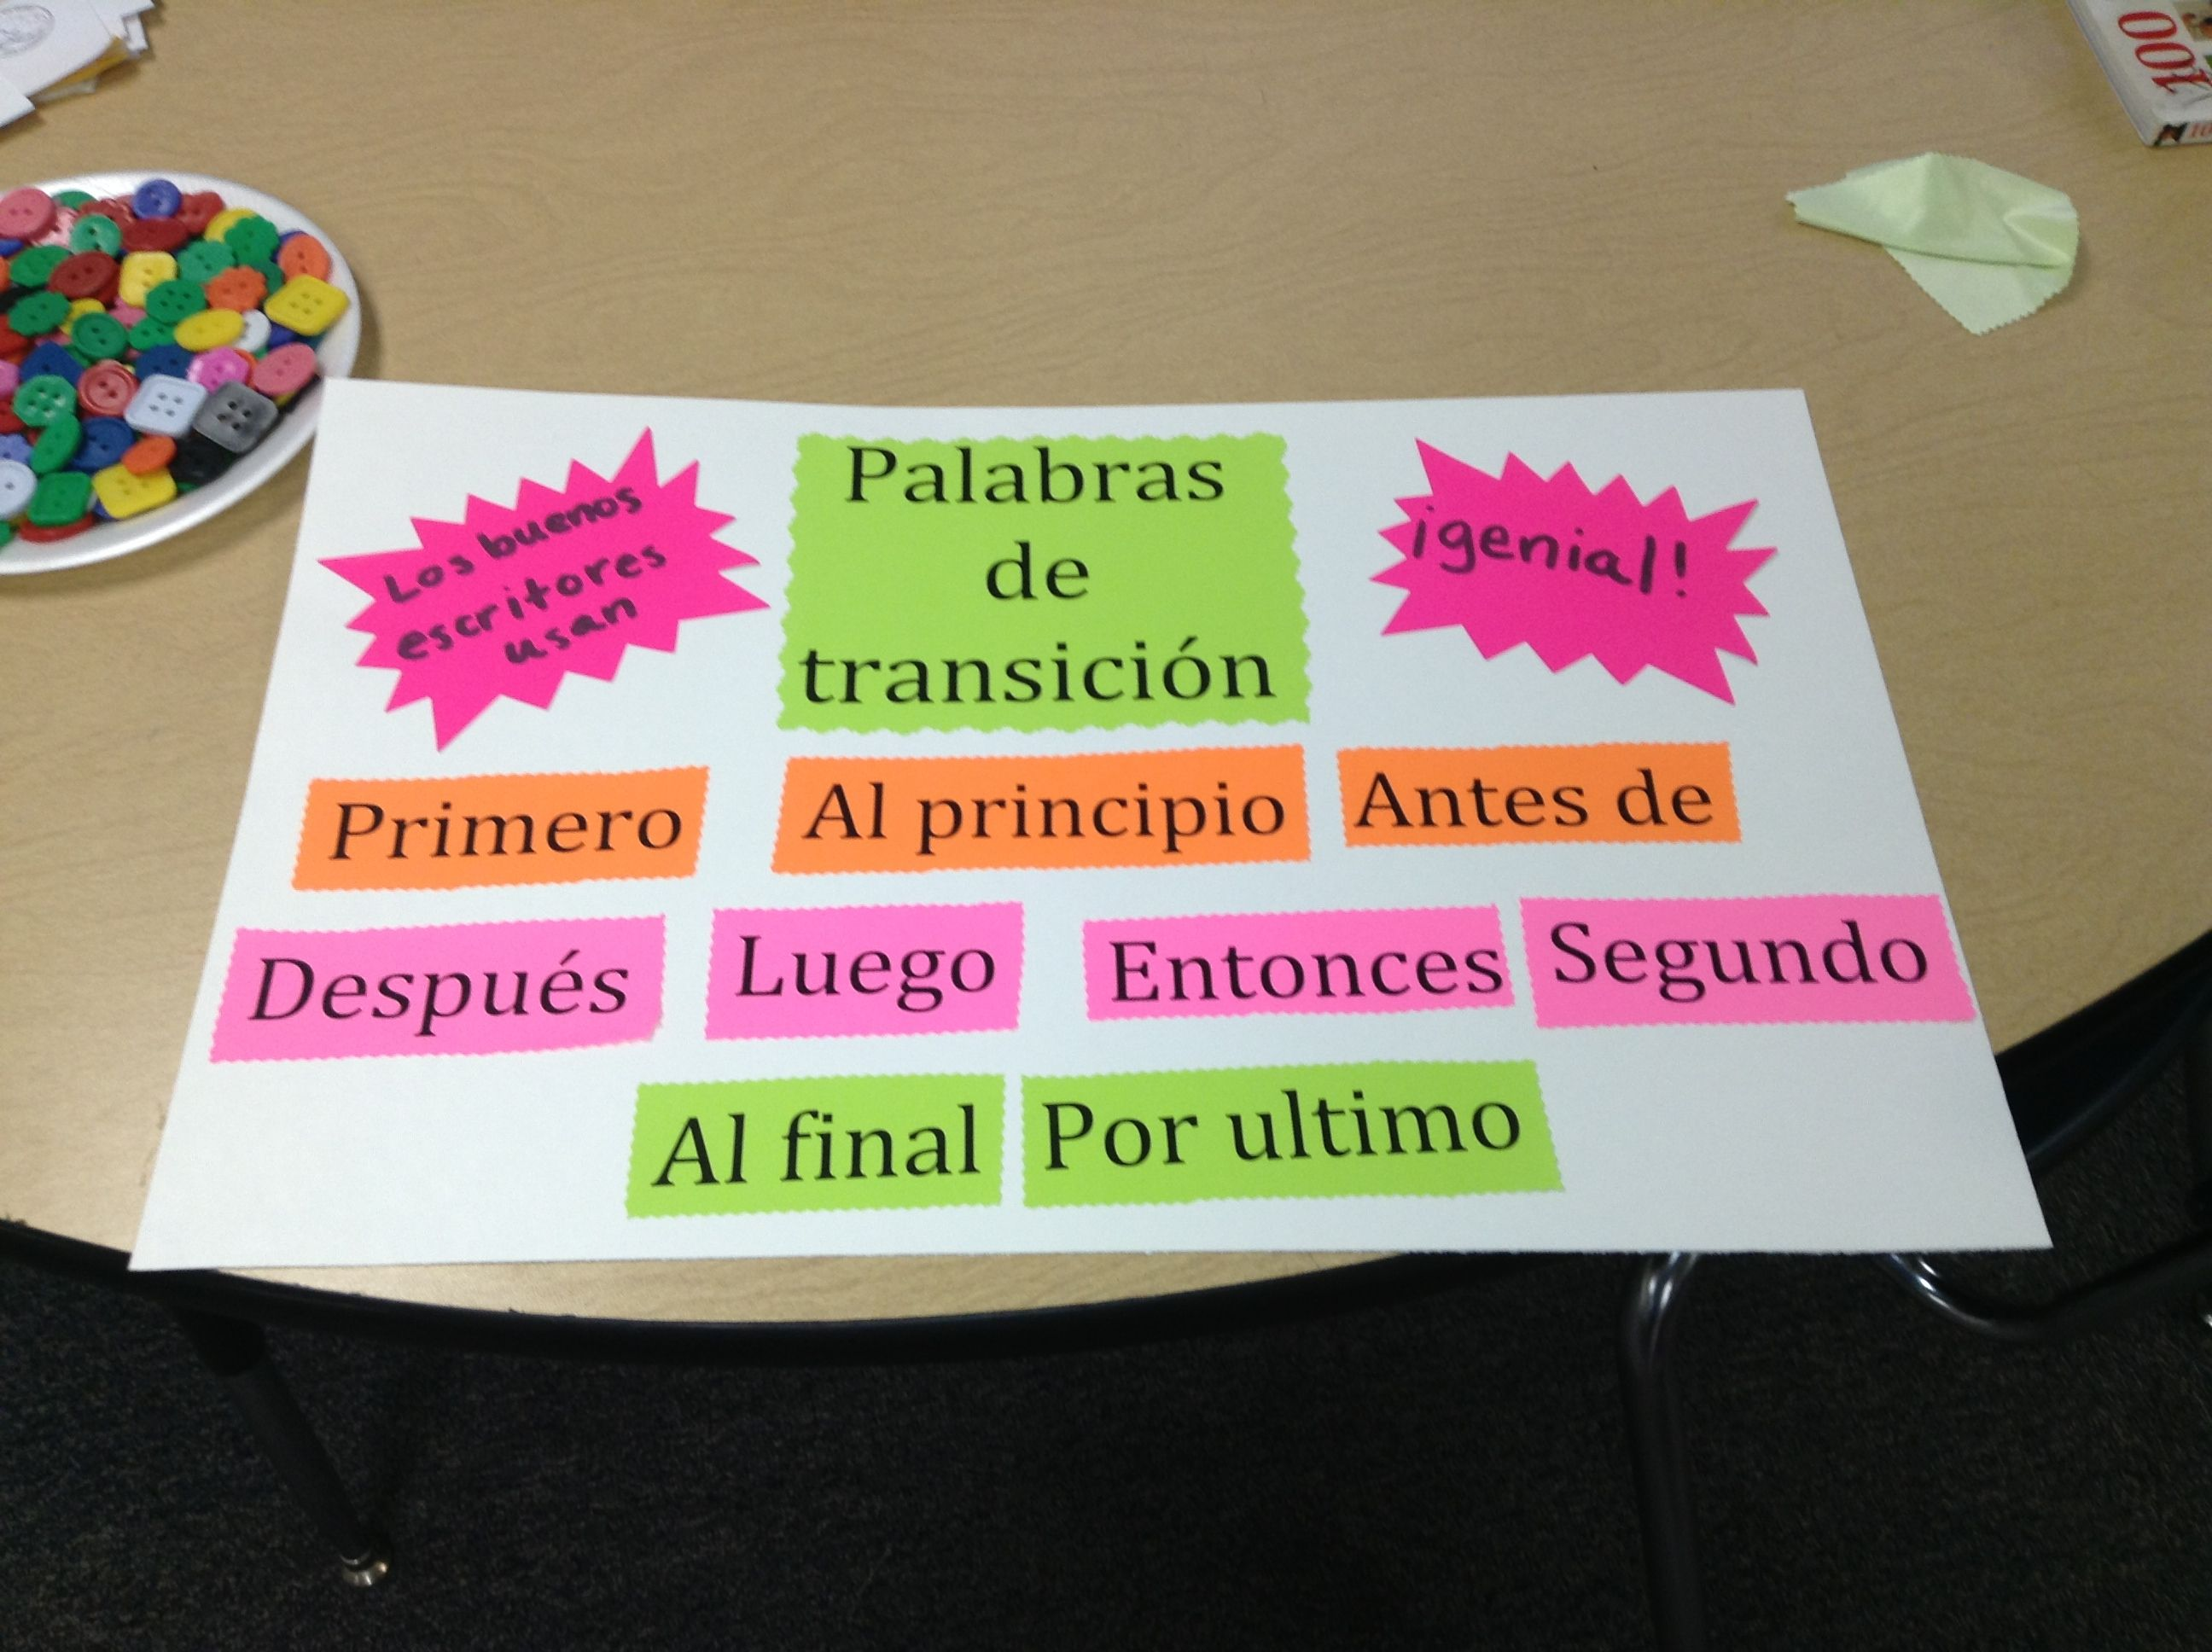 682 Best Bilingual Images On Pinterest Language School And